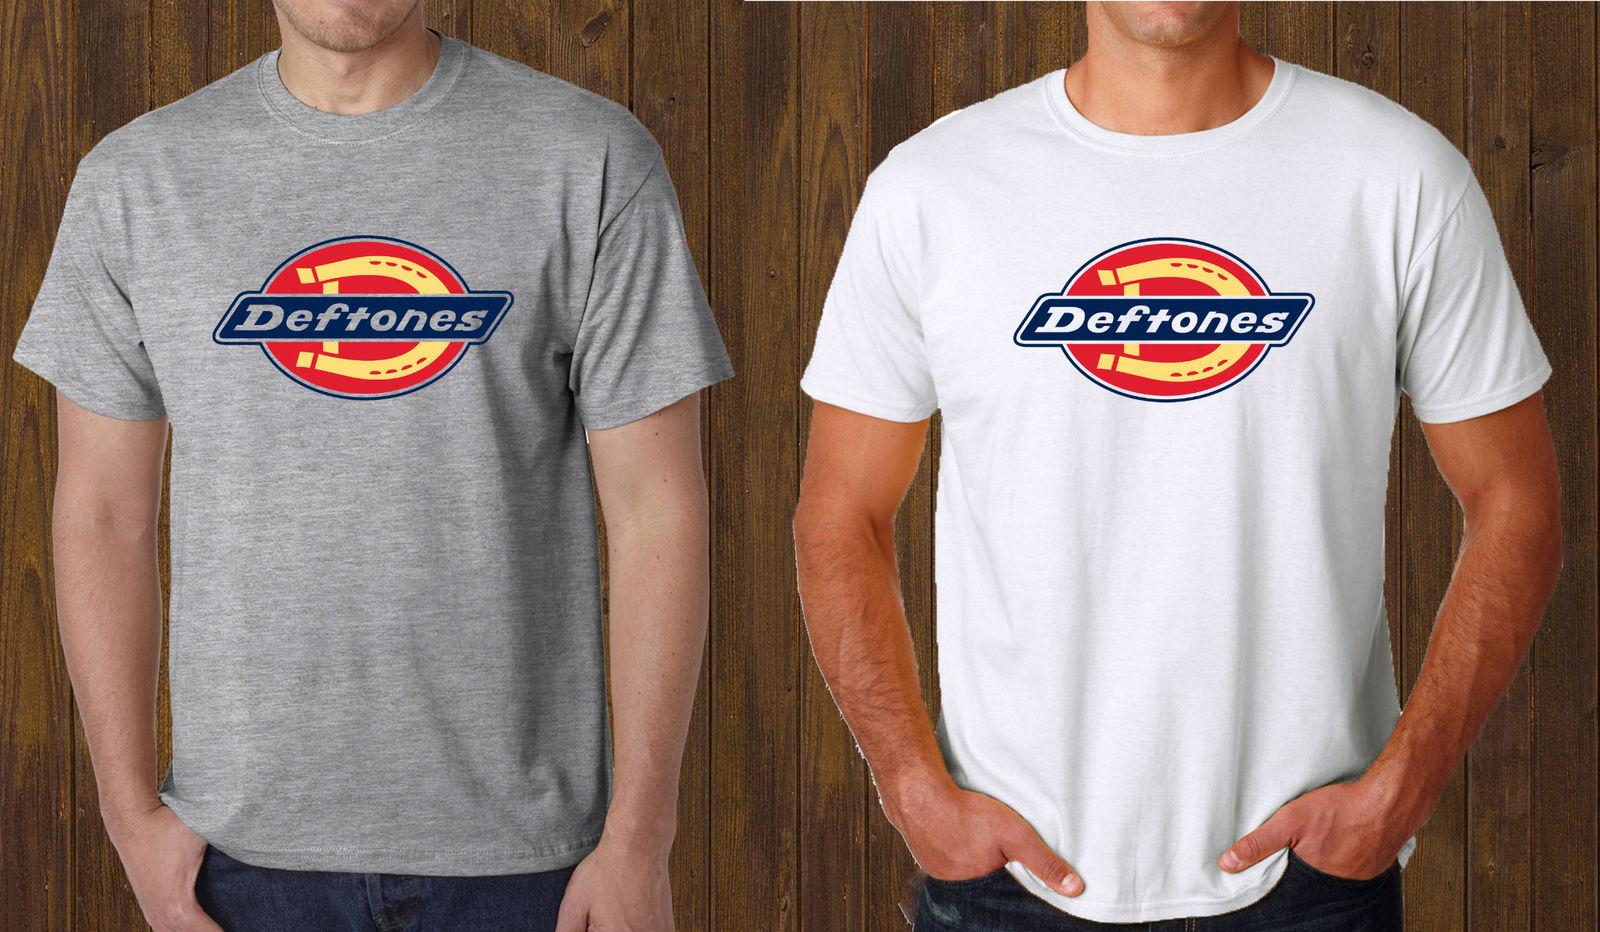 1684b68a1 Deftones Dickies Logo Grey T-Shirt White Tee Size S to 3XL Cool Casual  pride t shirt men Unisex Fashion tshirt